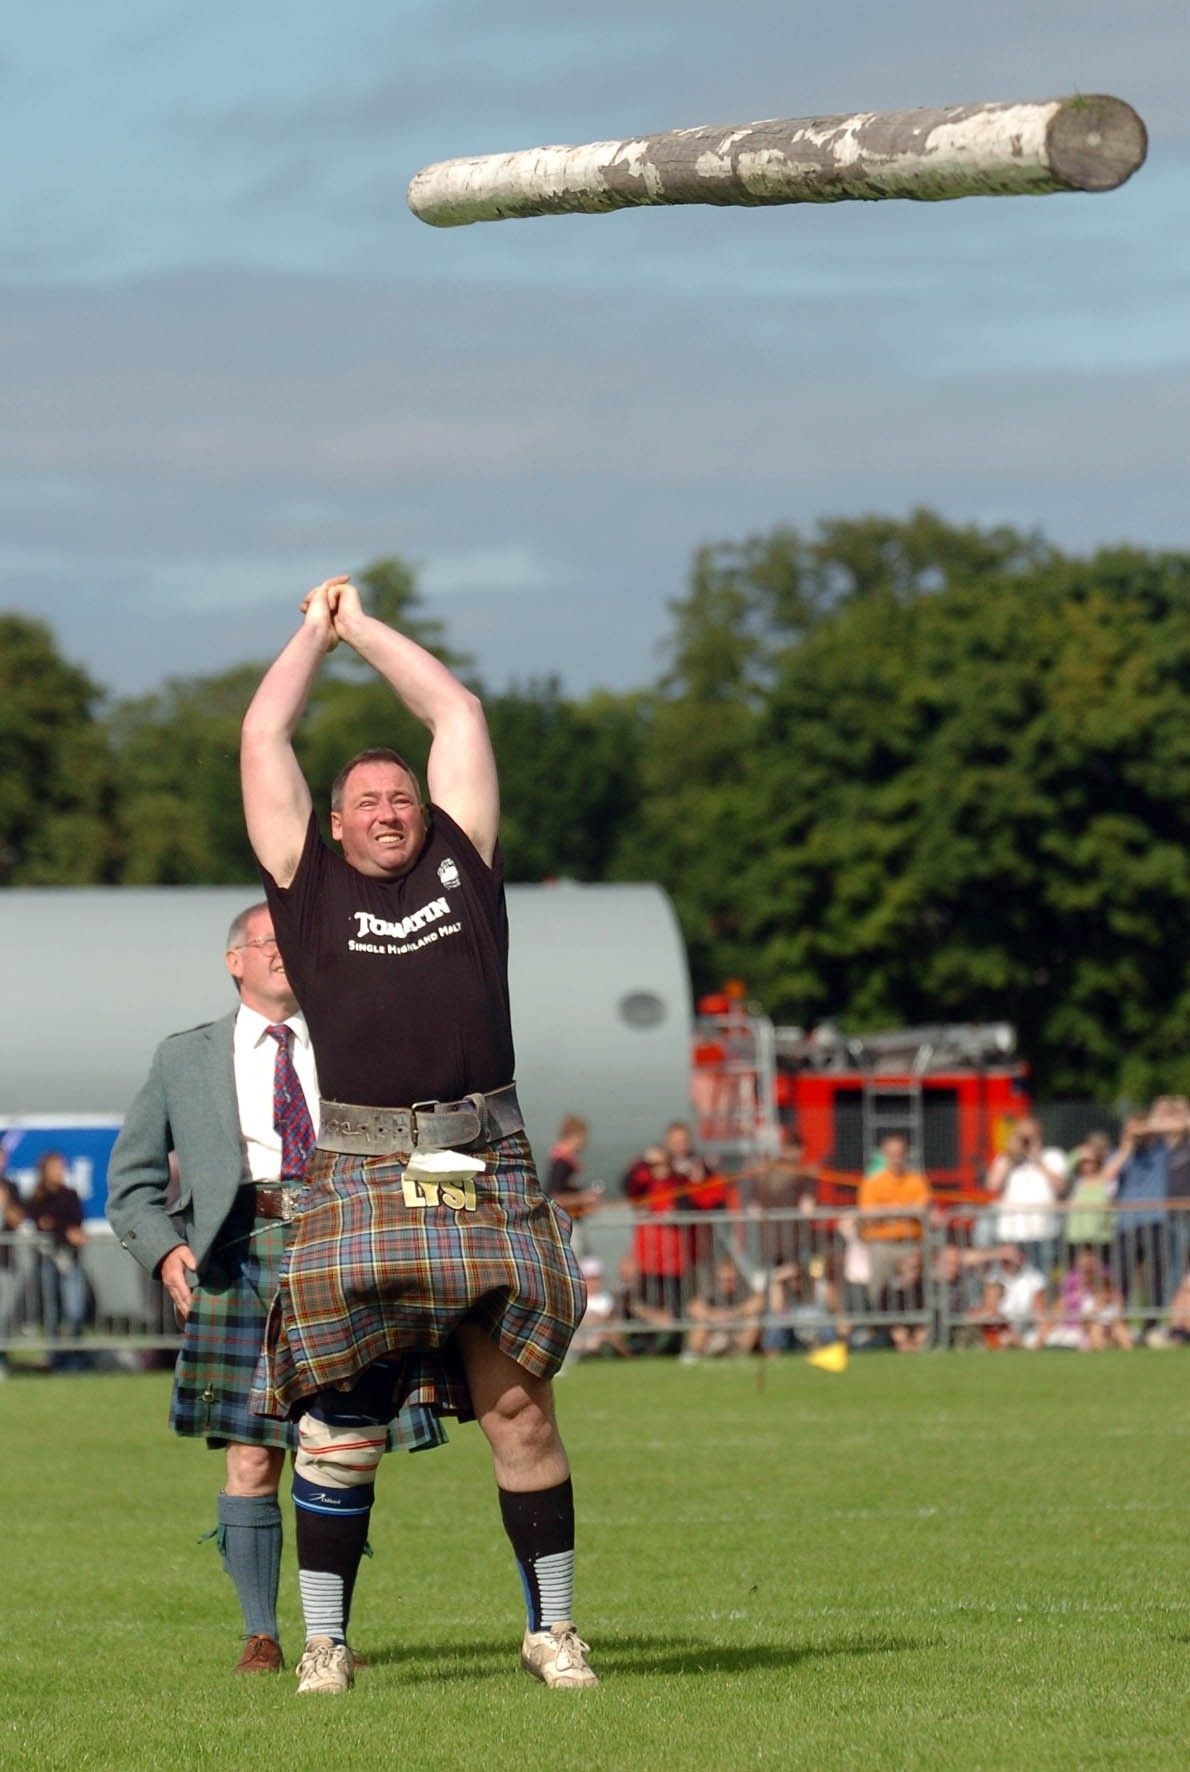 2013 Inverness Highland Games. I'm going to Inverness for women's masters in 2014. That's all ...